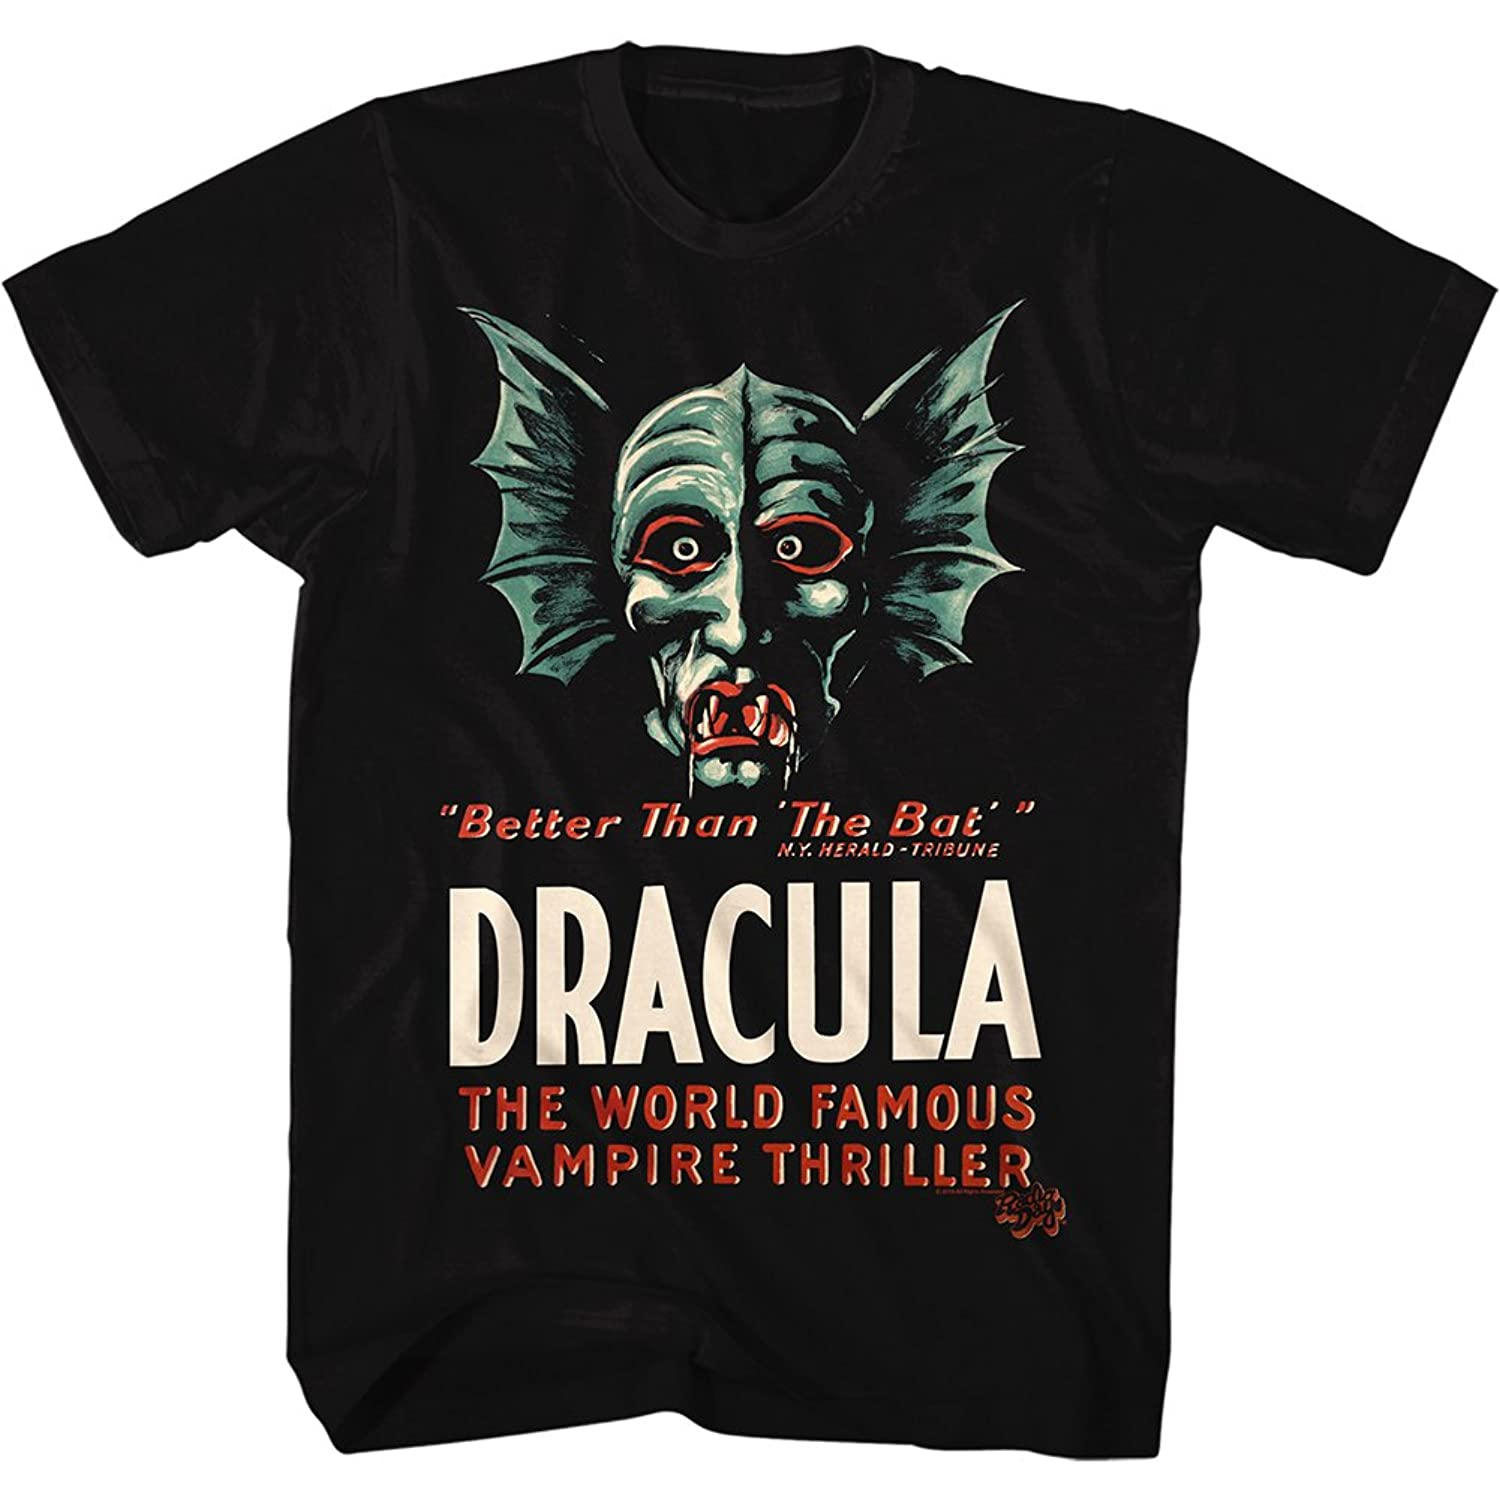 Radio Days Comedy Movie Woody Allen Film Vampire Thriller Adult T-Shirt